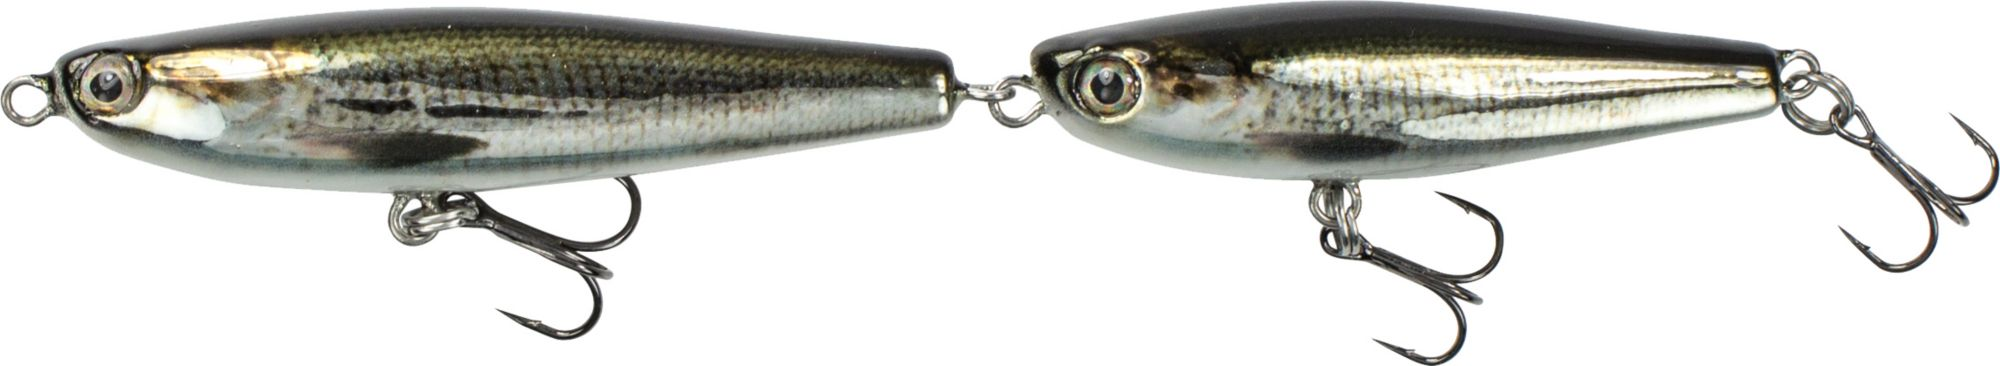 Lunkerhunt Link Topwater Lure, Gizzard Shad